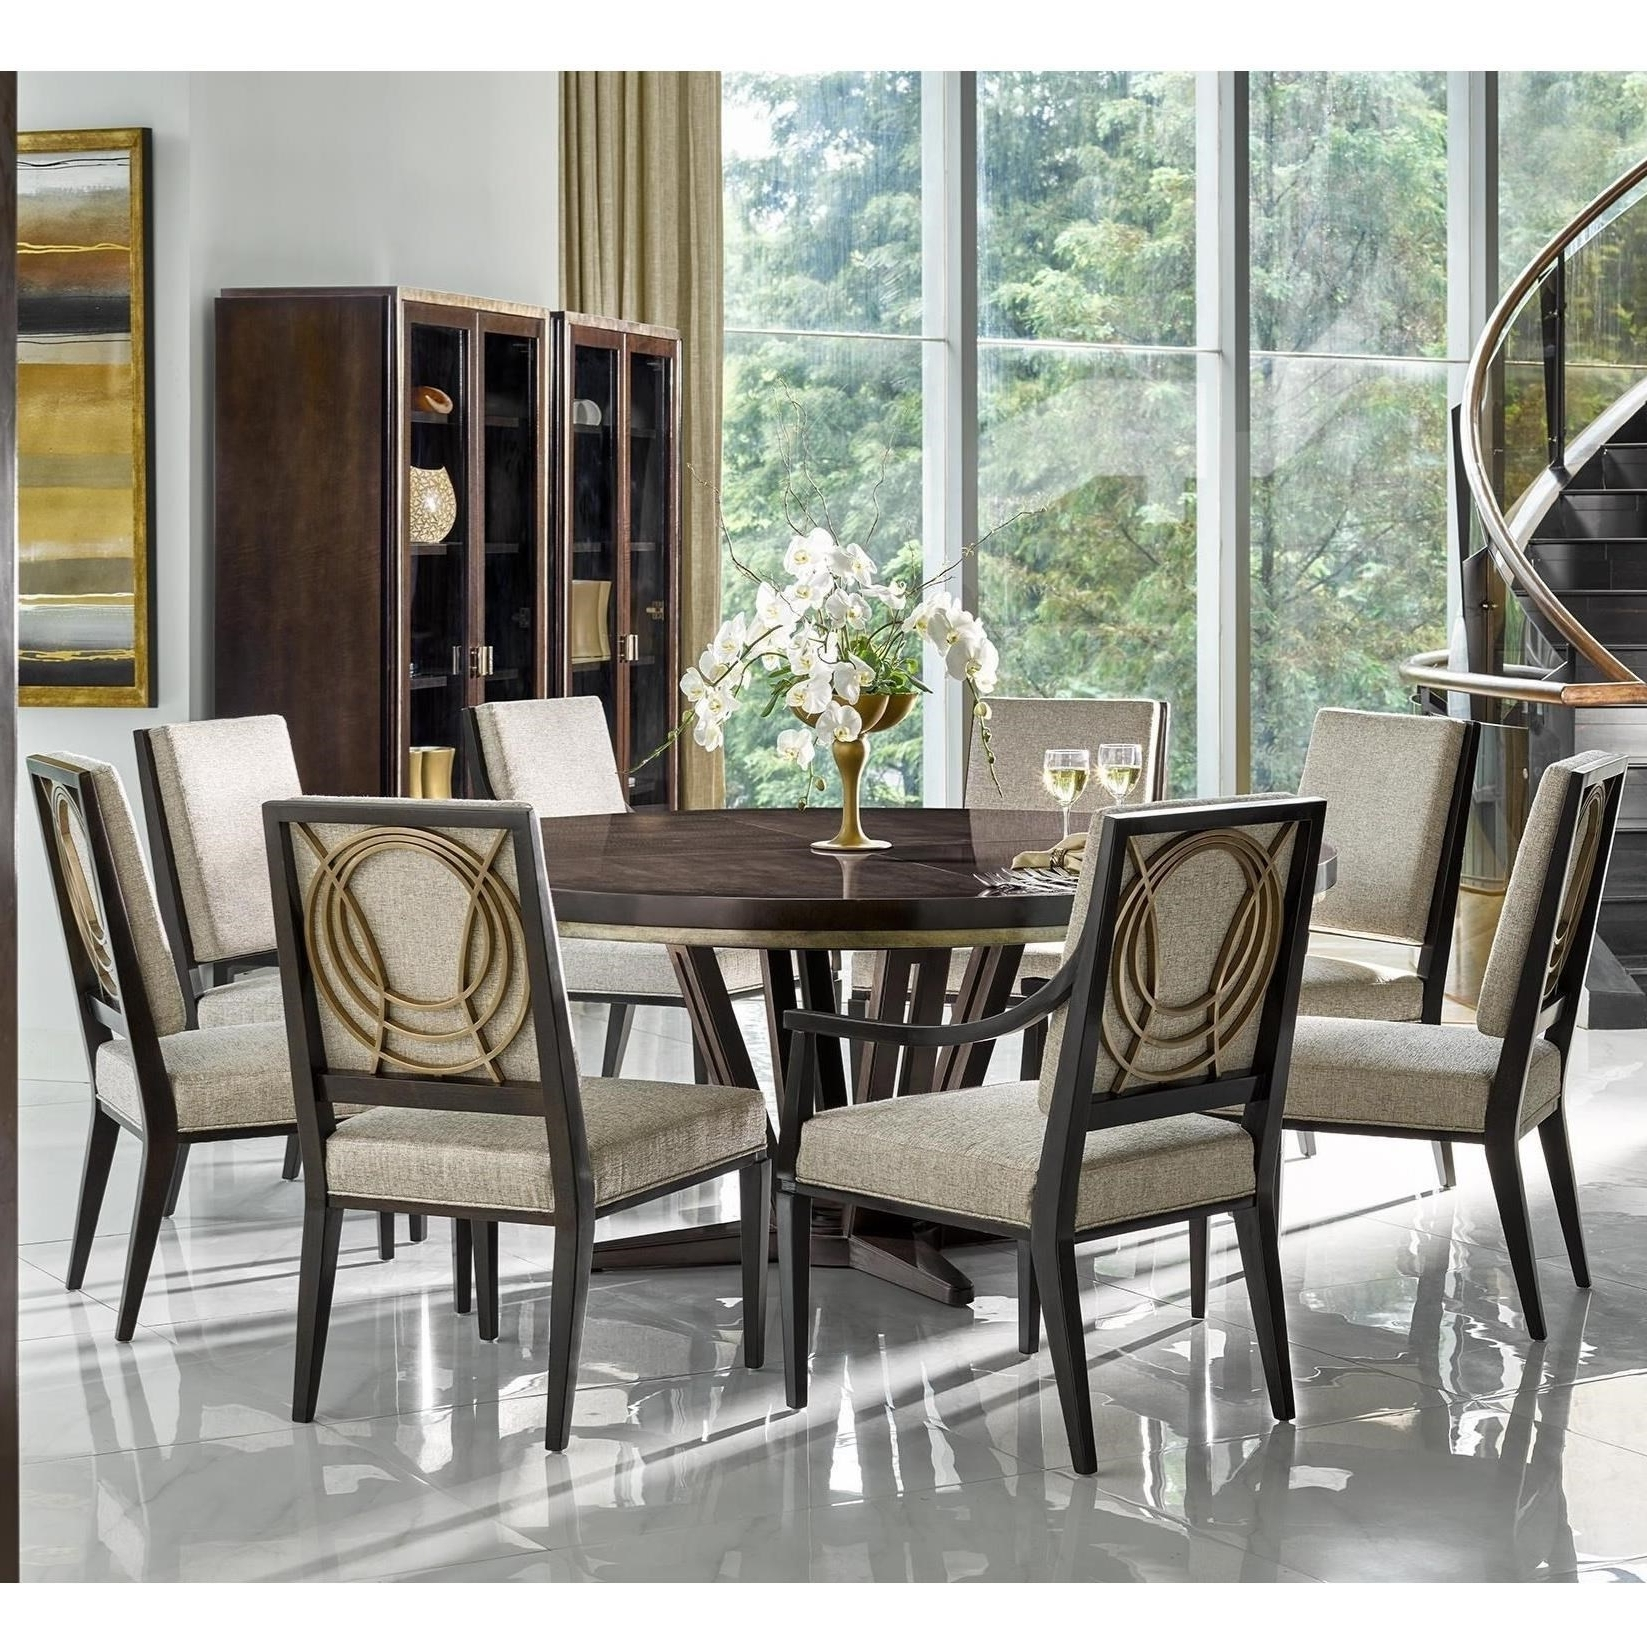 Cheery Caira Piece Extension Set Back Chairs Caira Piece Extension For Popular Caira 9 Piece Extension Dining Sets (View 9 of 25)